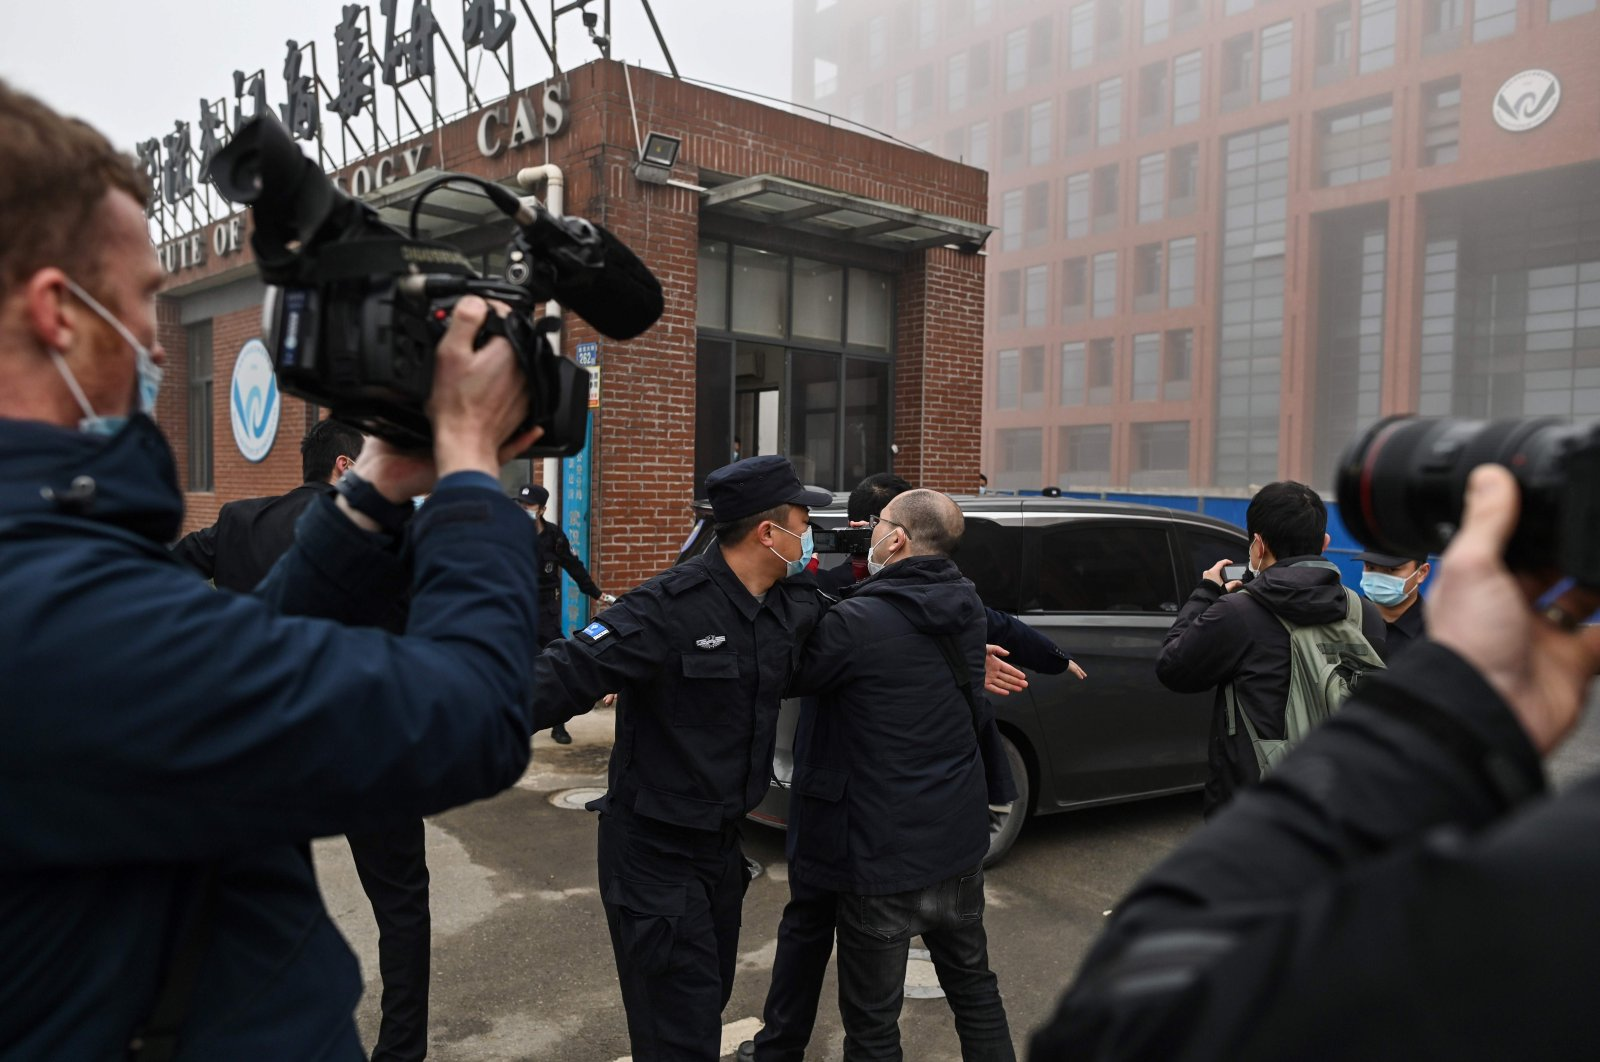 Members of the World Health Organization (WHO) team investigating the origins of the COVID-19 coronavirus, arrive at the Wuhan Institute of Virology in Wuhan, in China's central Hubei province on Feb. 3, 2021. (AFP Photo)